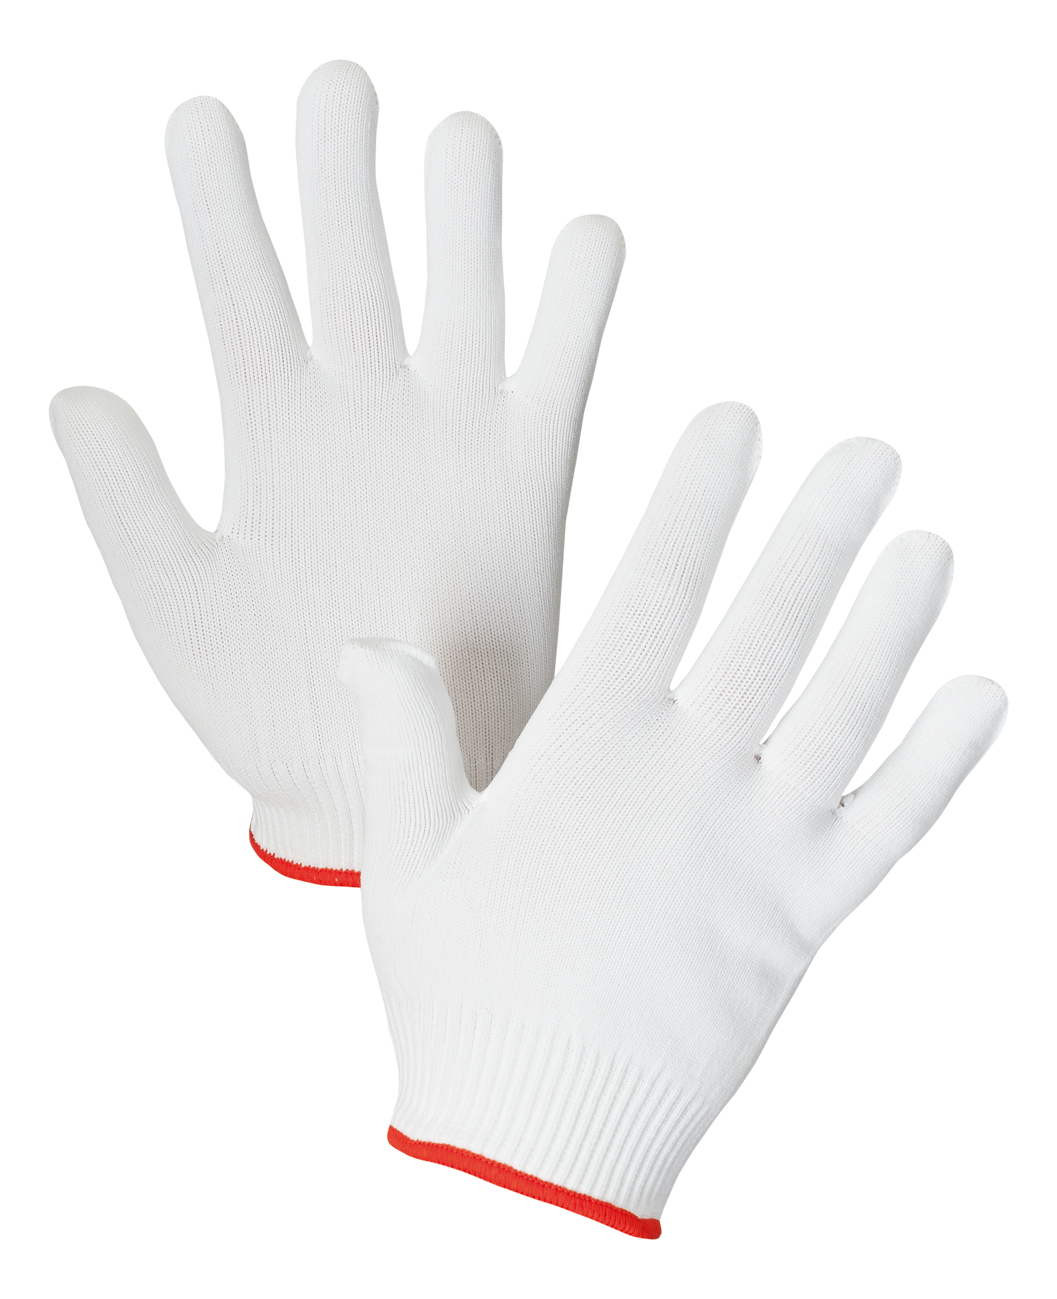 AERO Gloves SoftKnit 1329